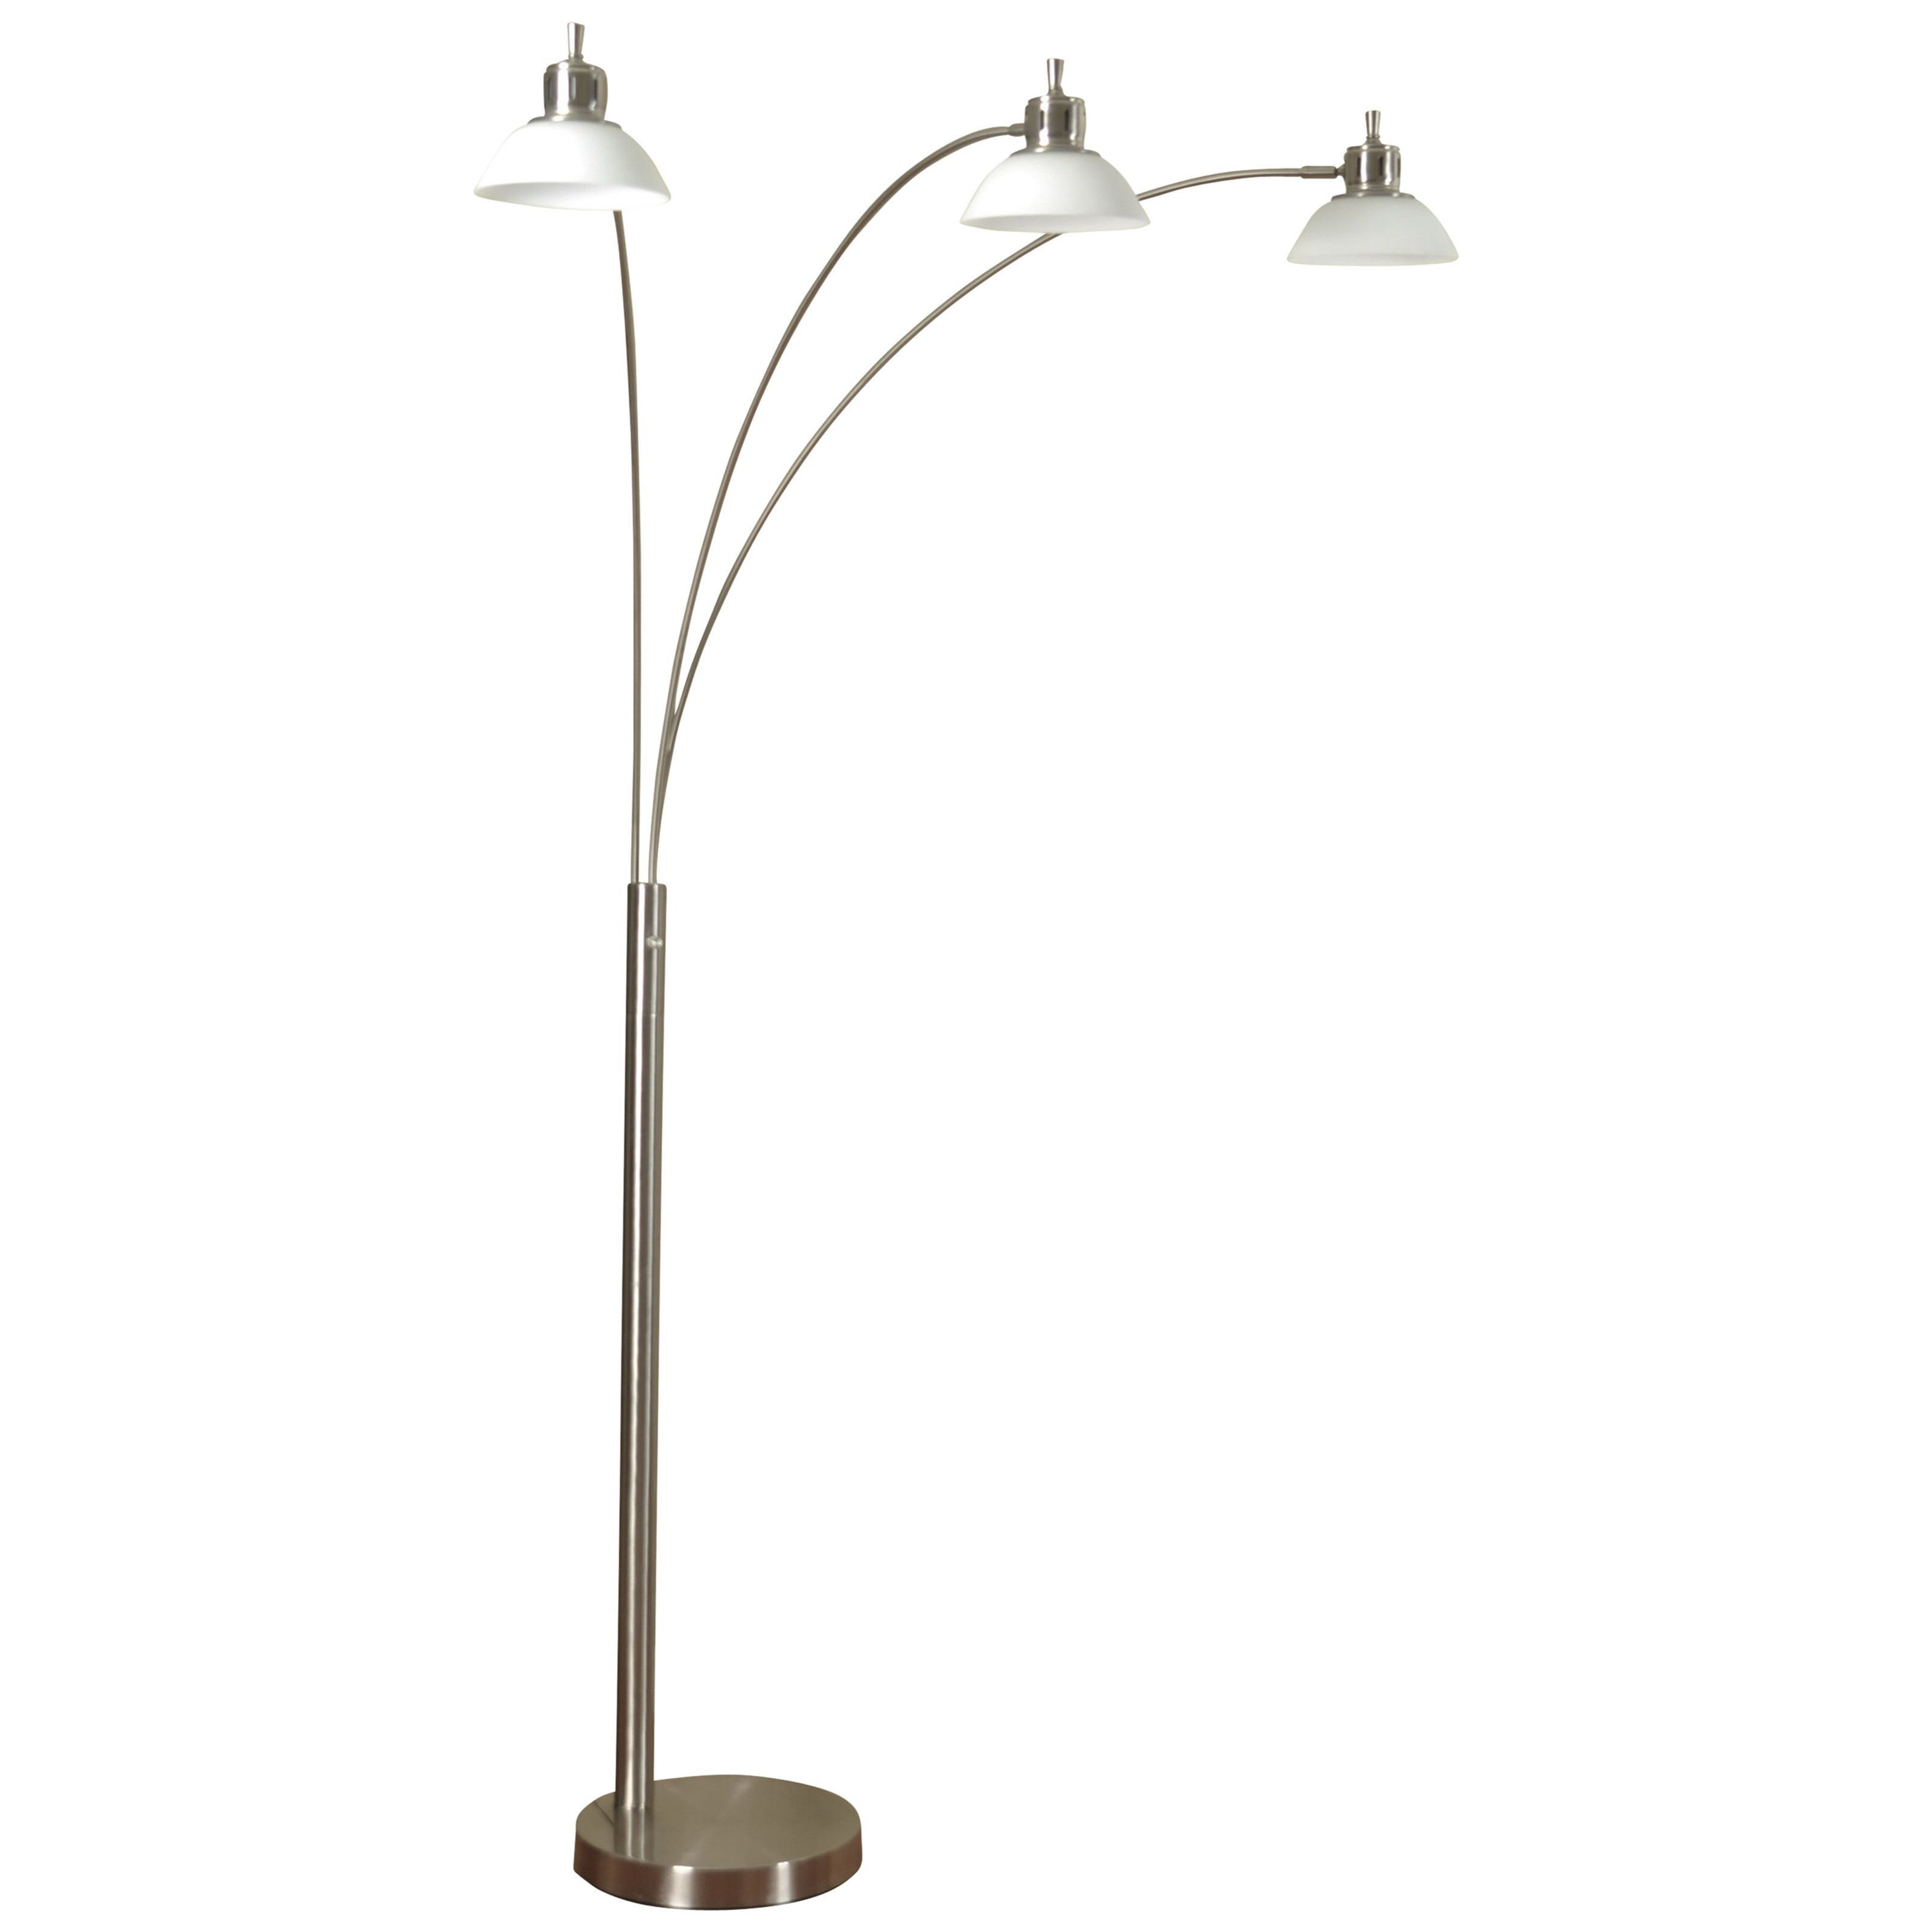 Stylecraft Lamps Triple Arm Arch Lamp Value City